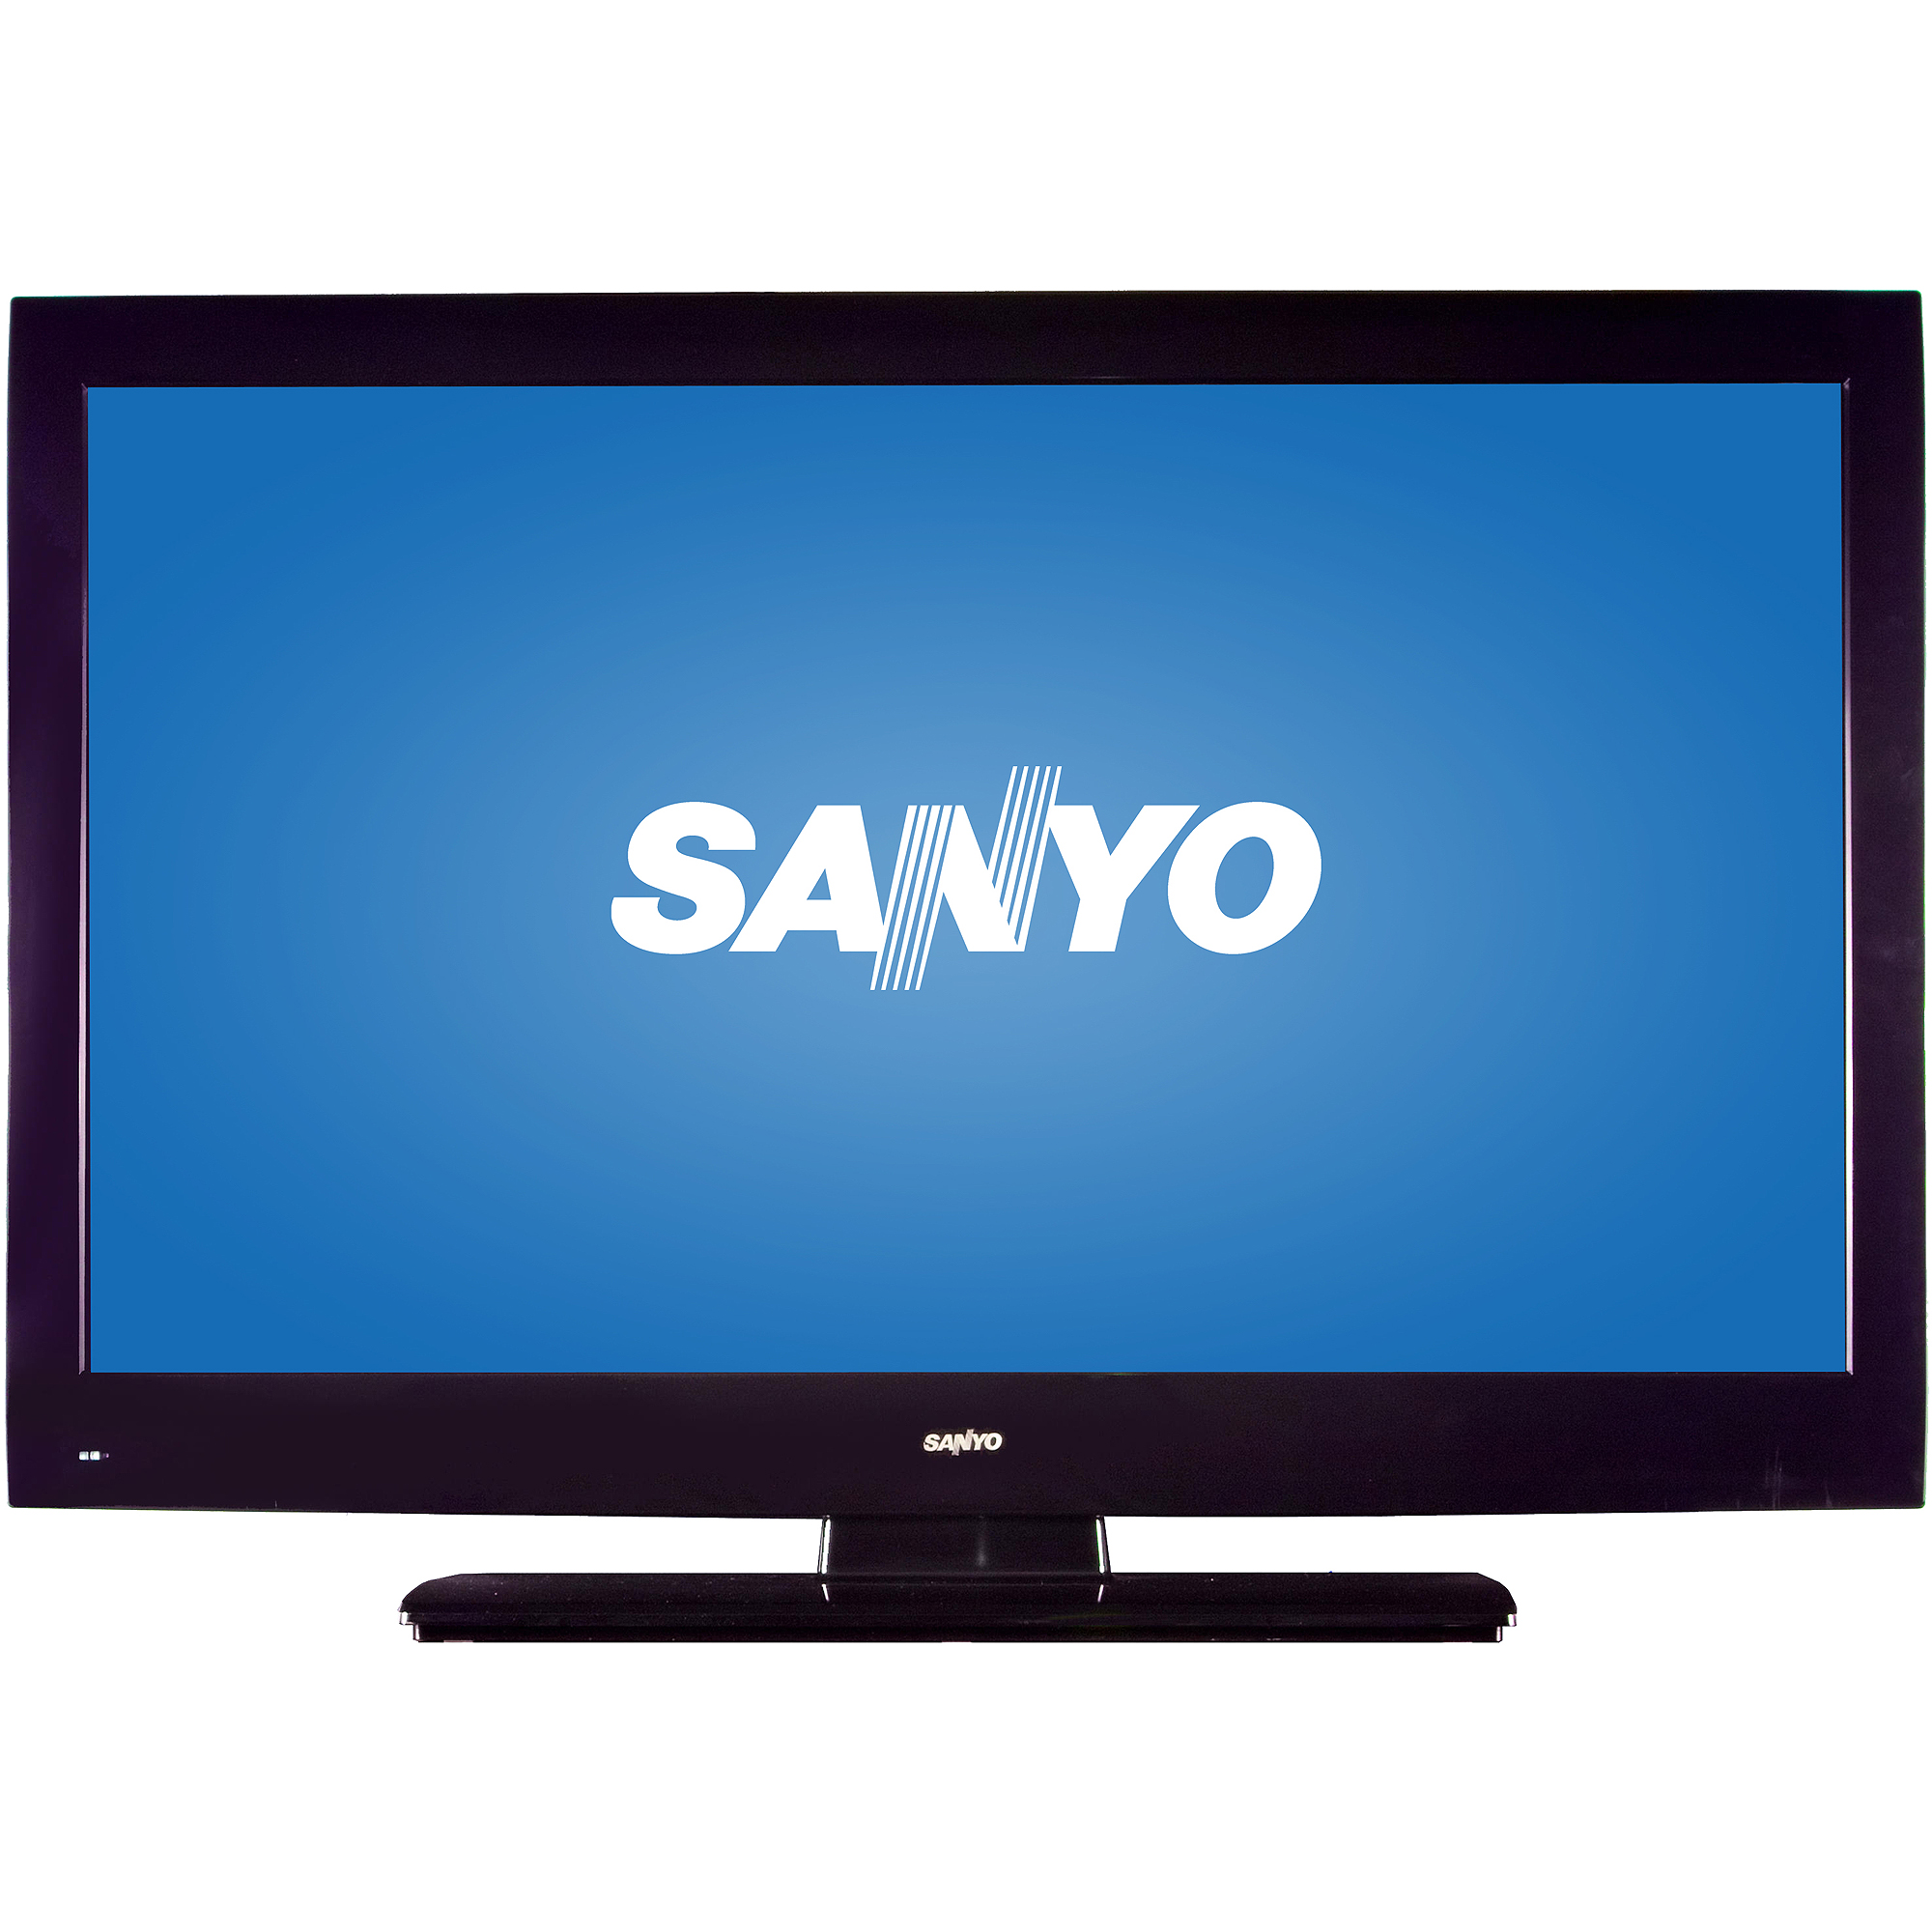 "Sanyo DP55441  55"" Class LCD 1080p 120Hz HDTV, Refurbished"